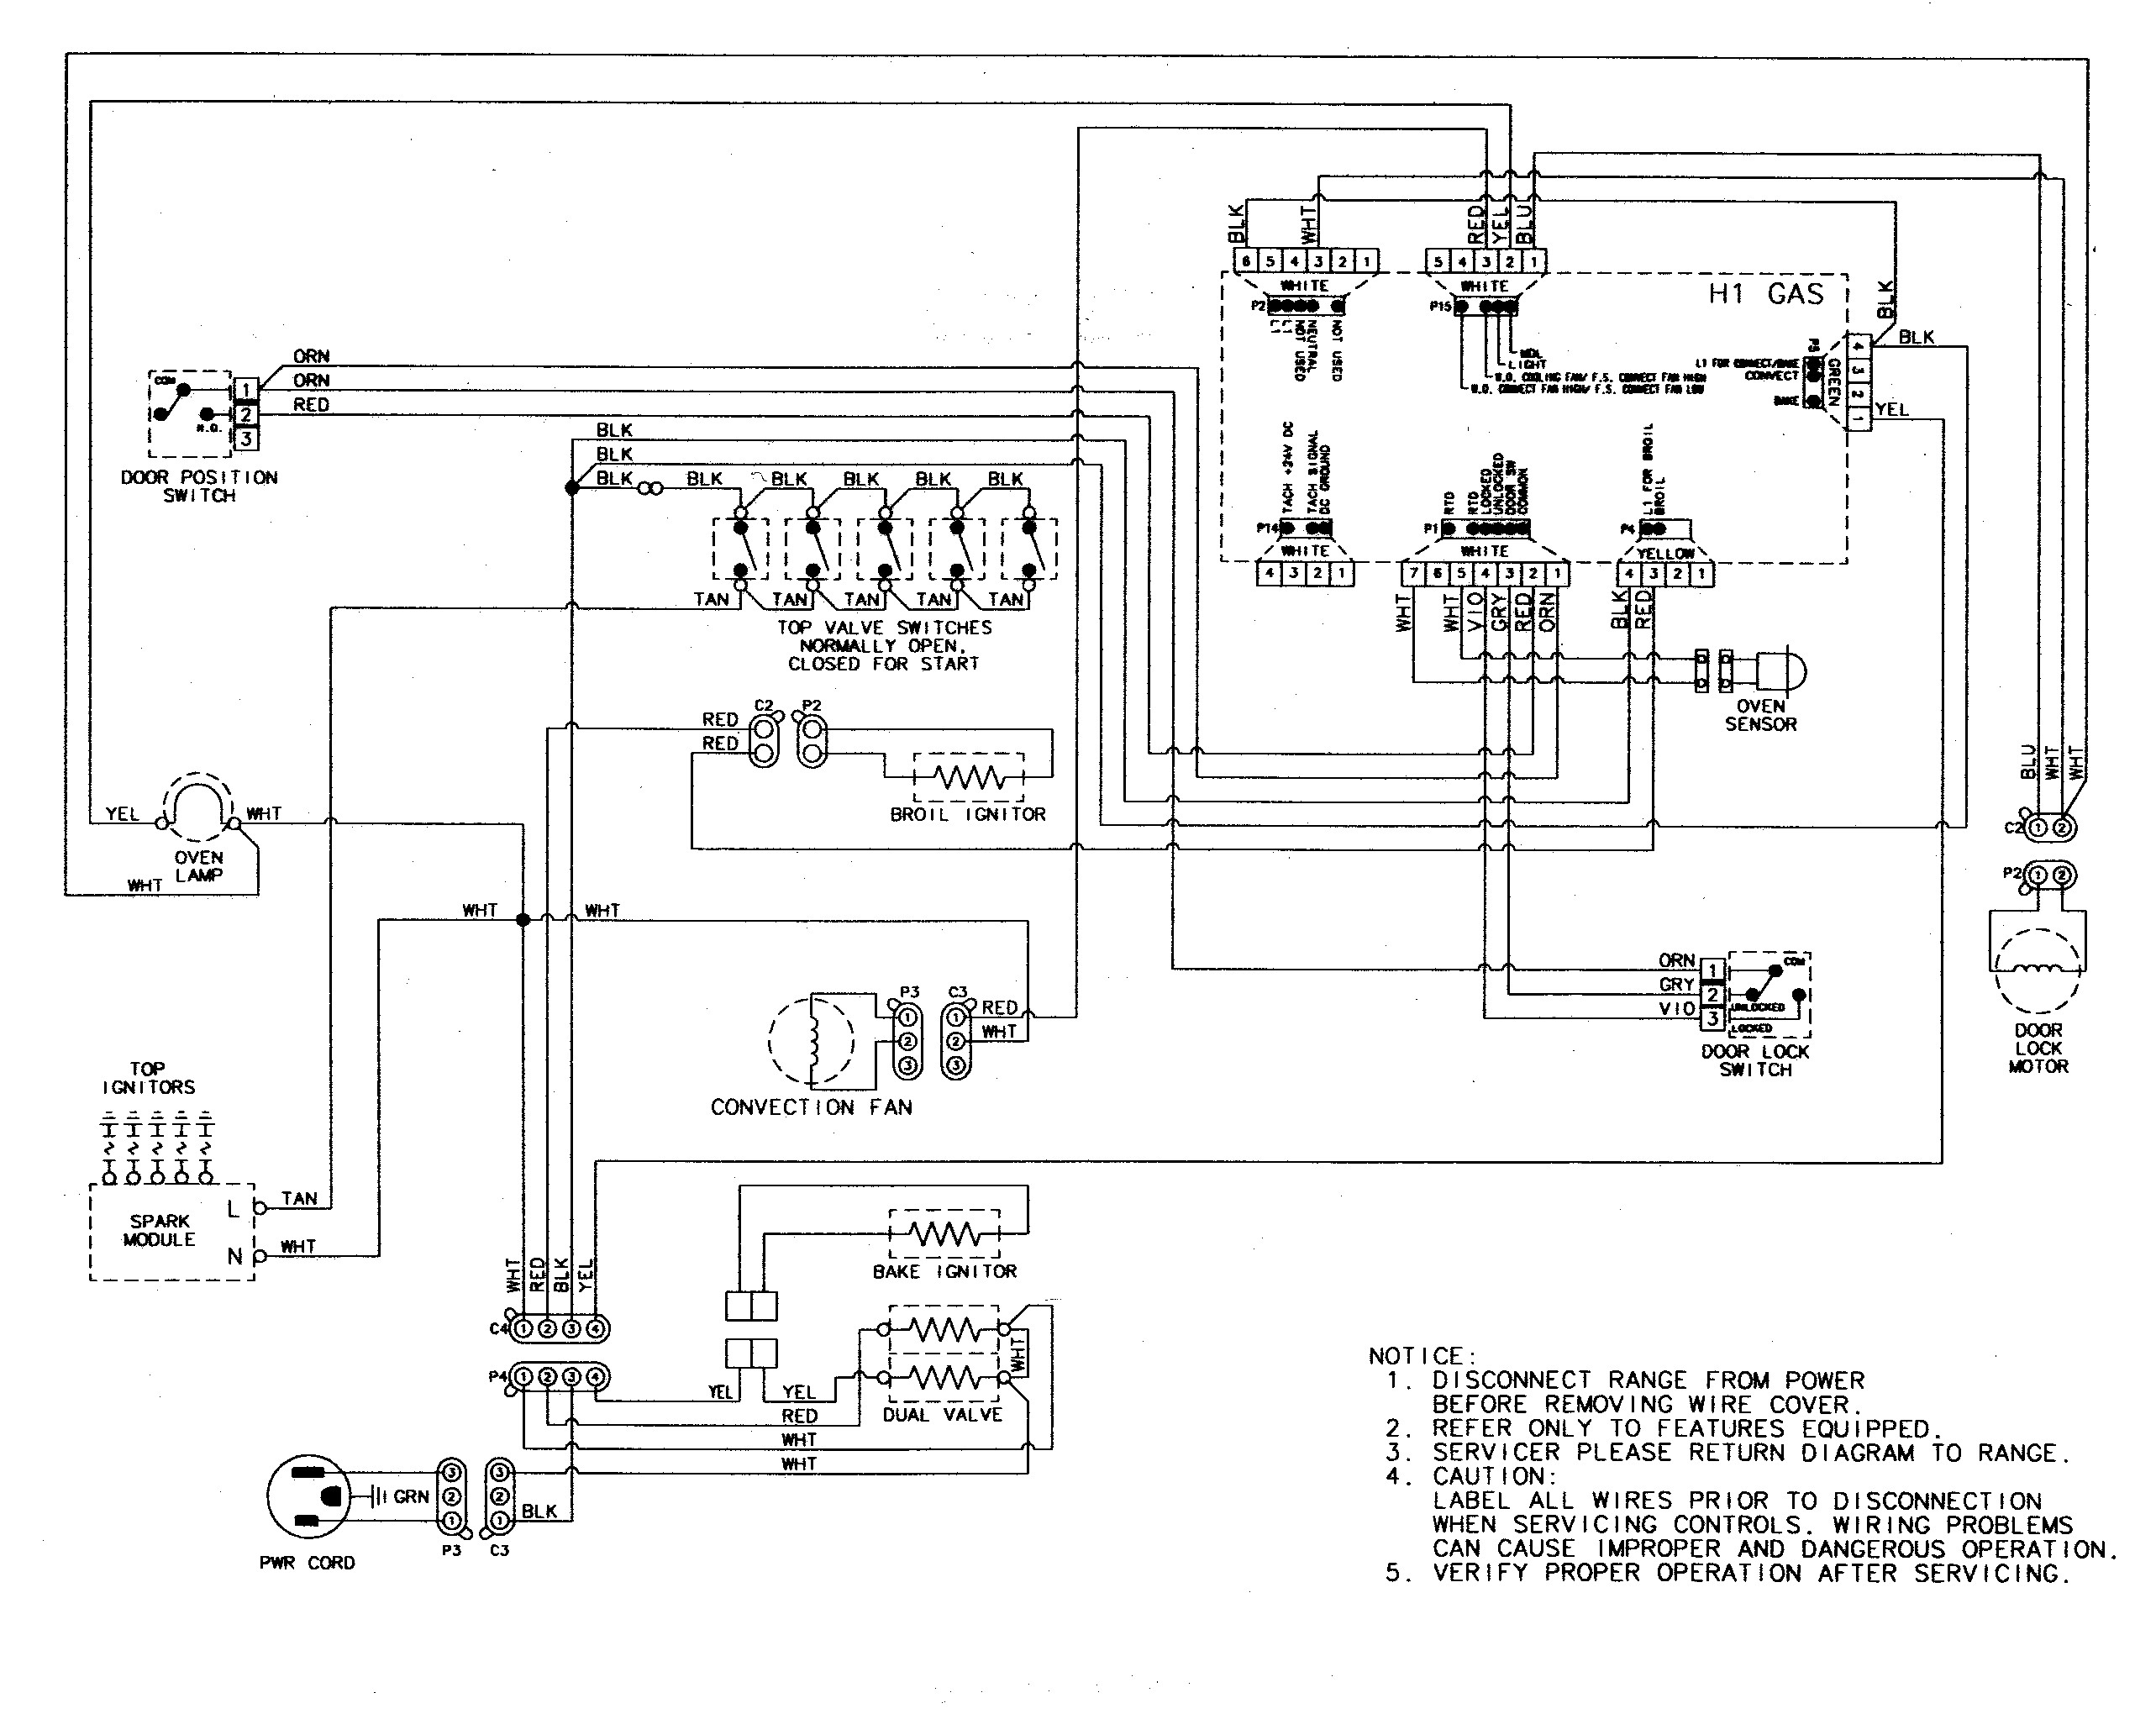 powder coat oven wiring diagram Download-wiring diagrams to her with ge timer switch wiring diagram wire rh lakitiki co 5-p